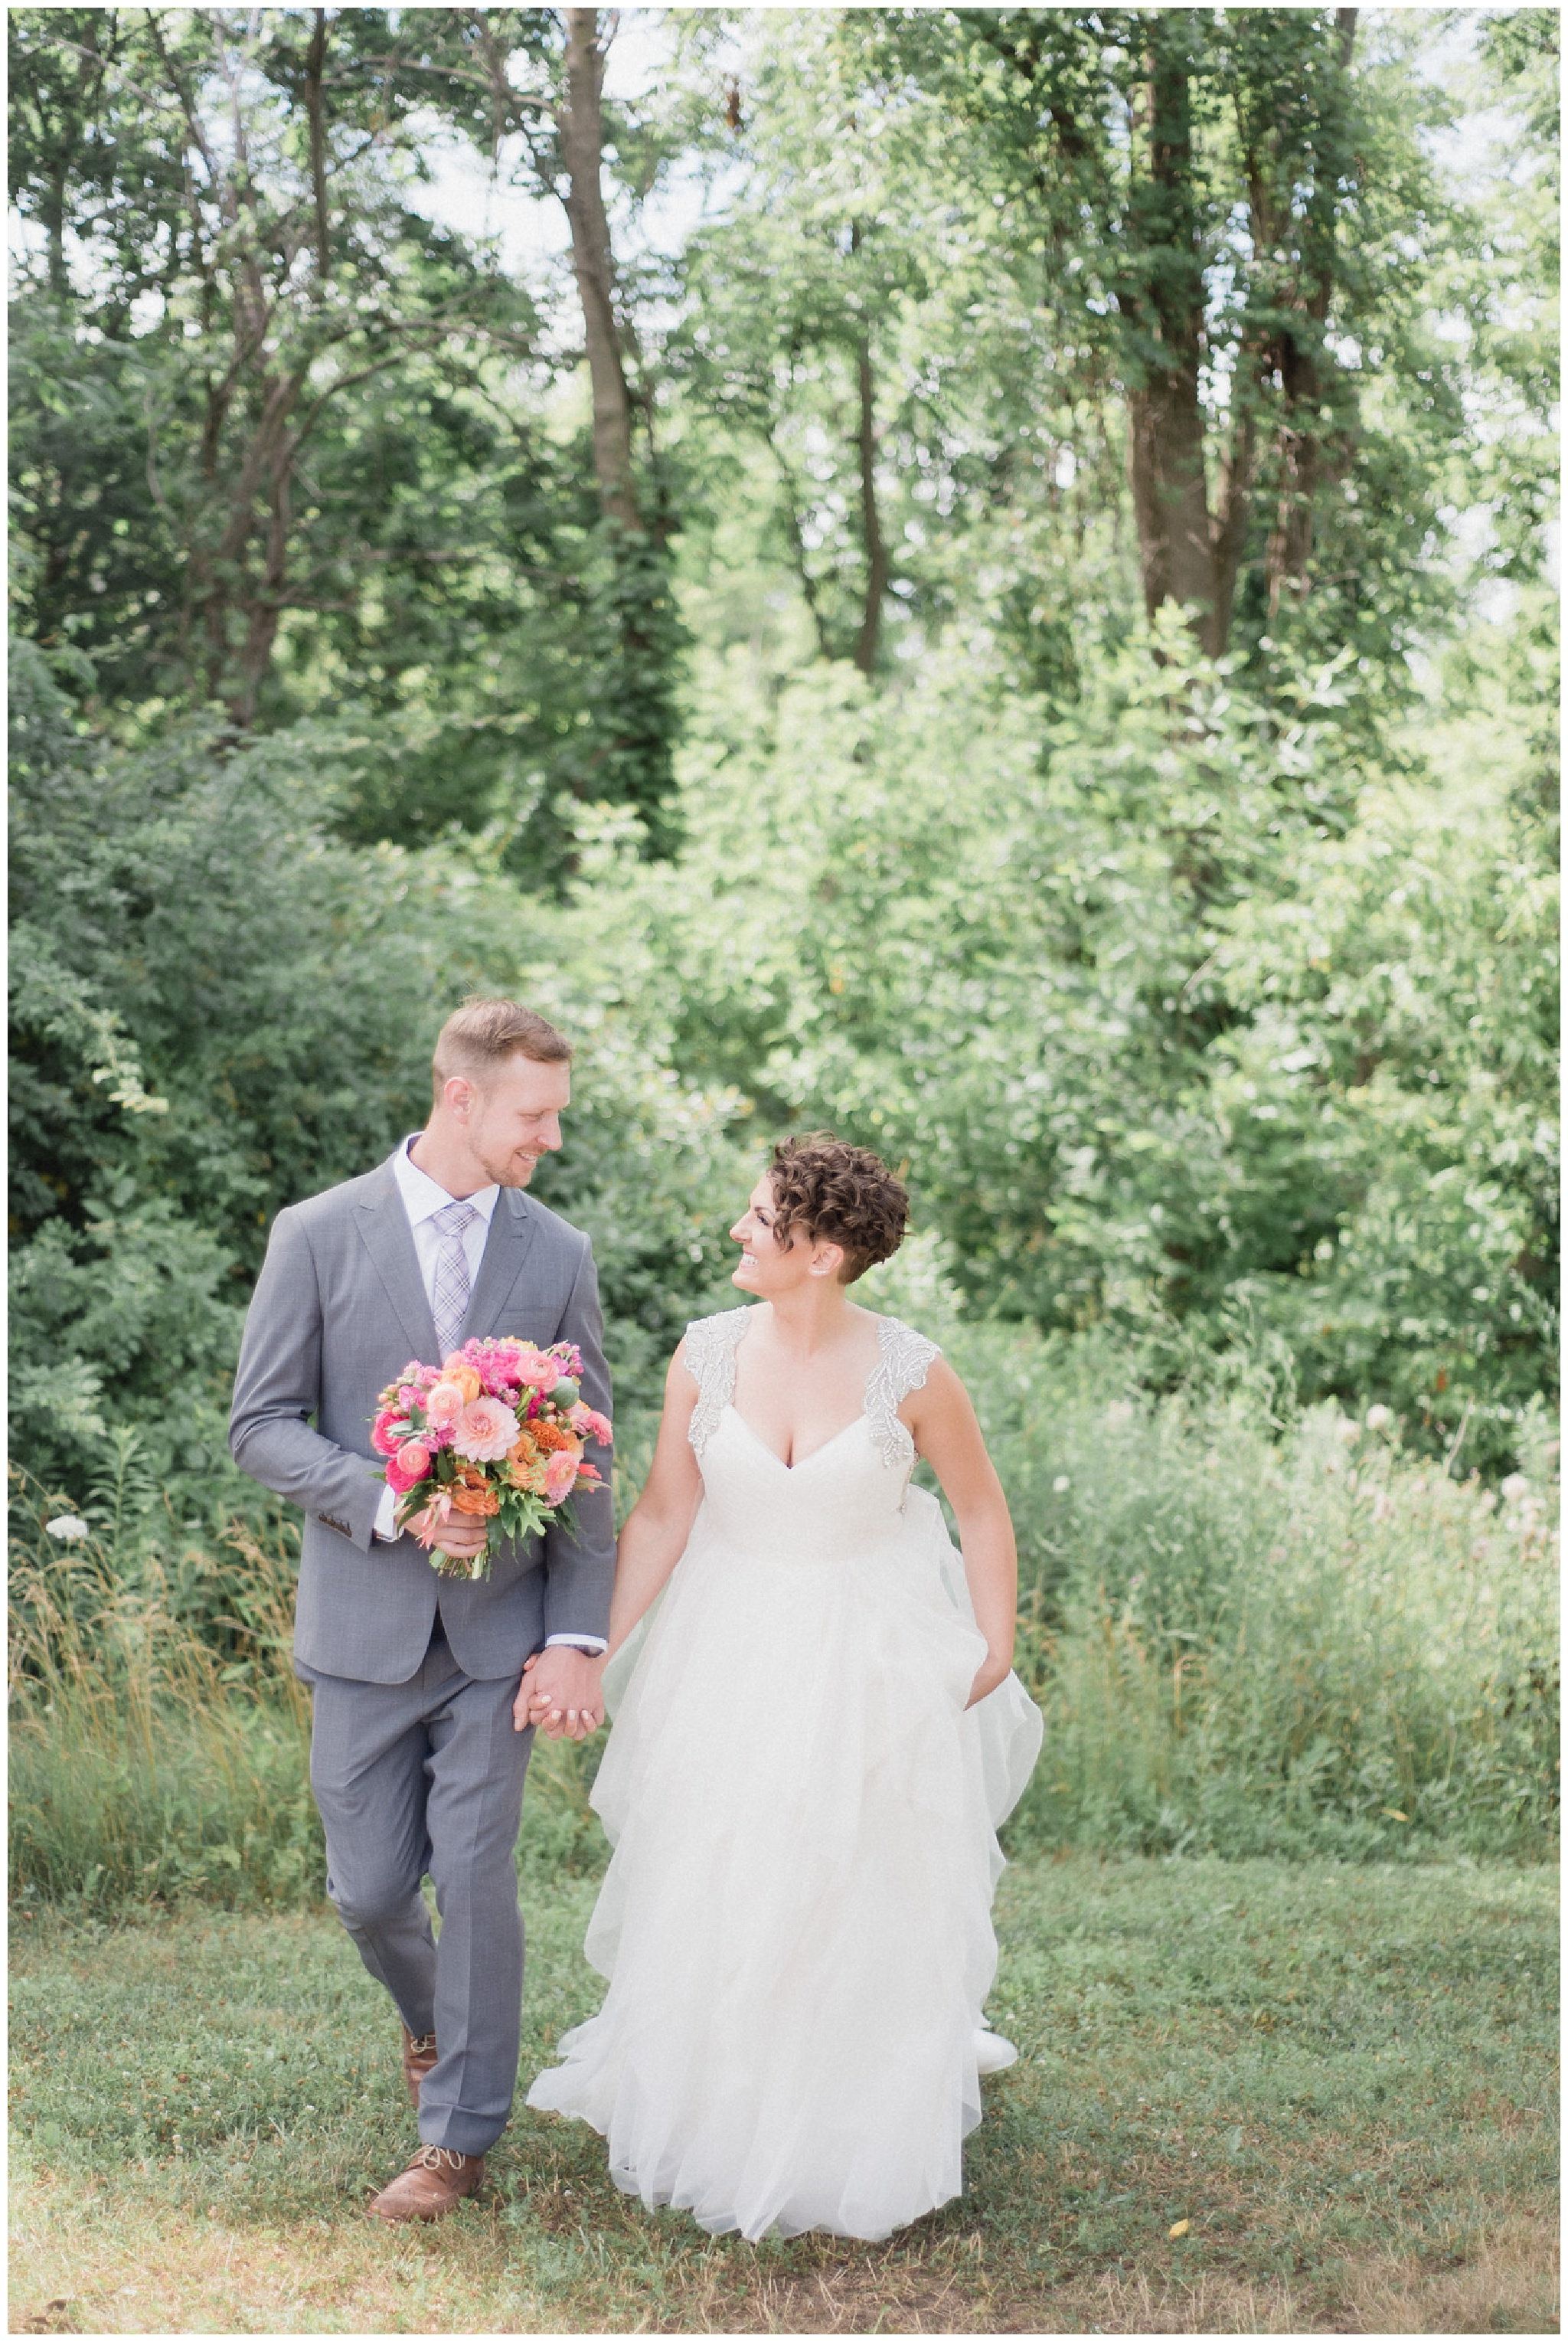 Niagara vineyard wedding by Jenn Kavanagh Photography